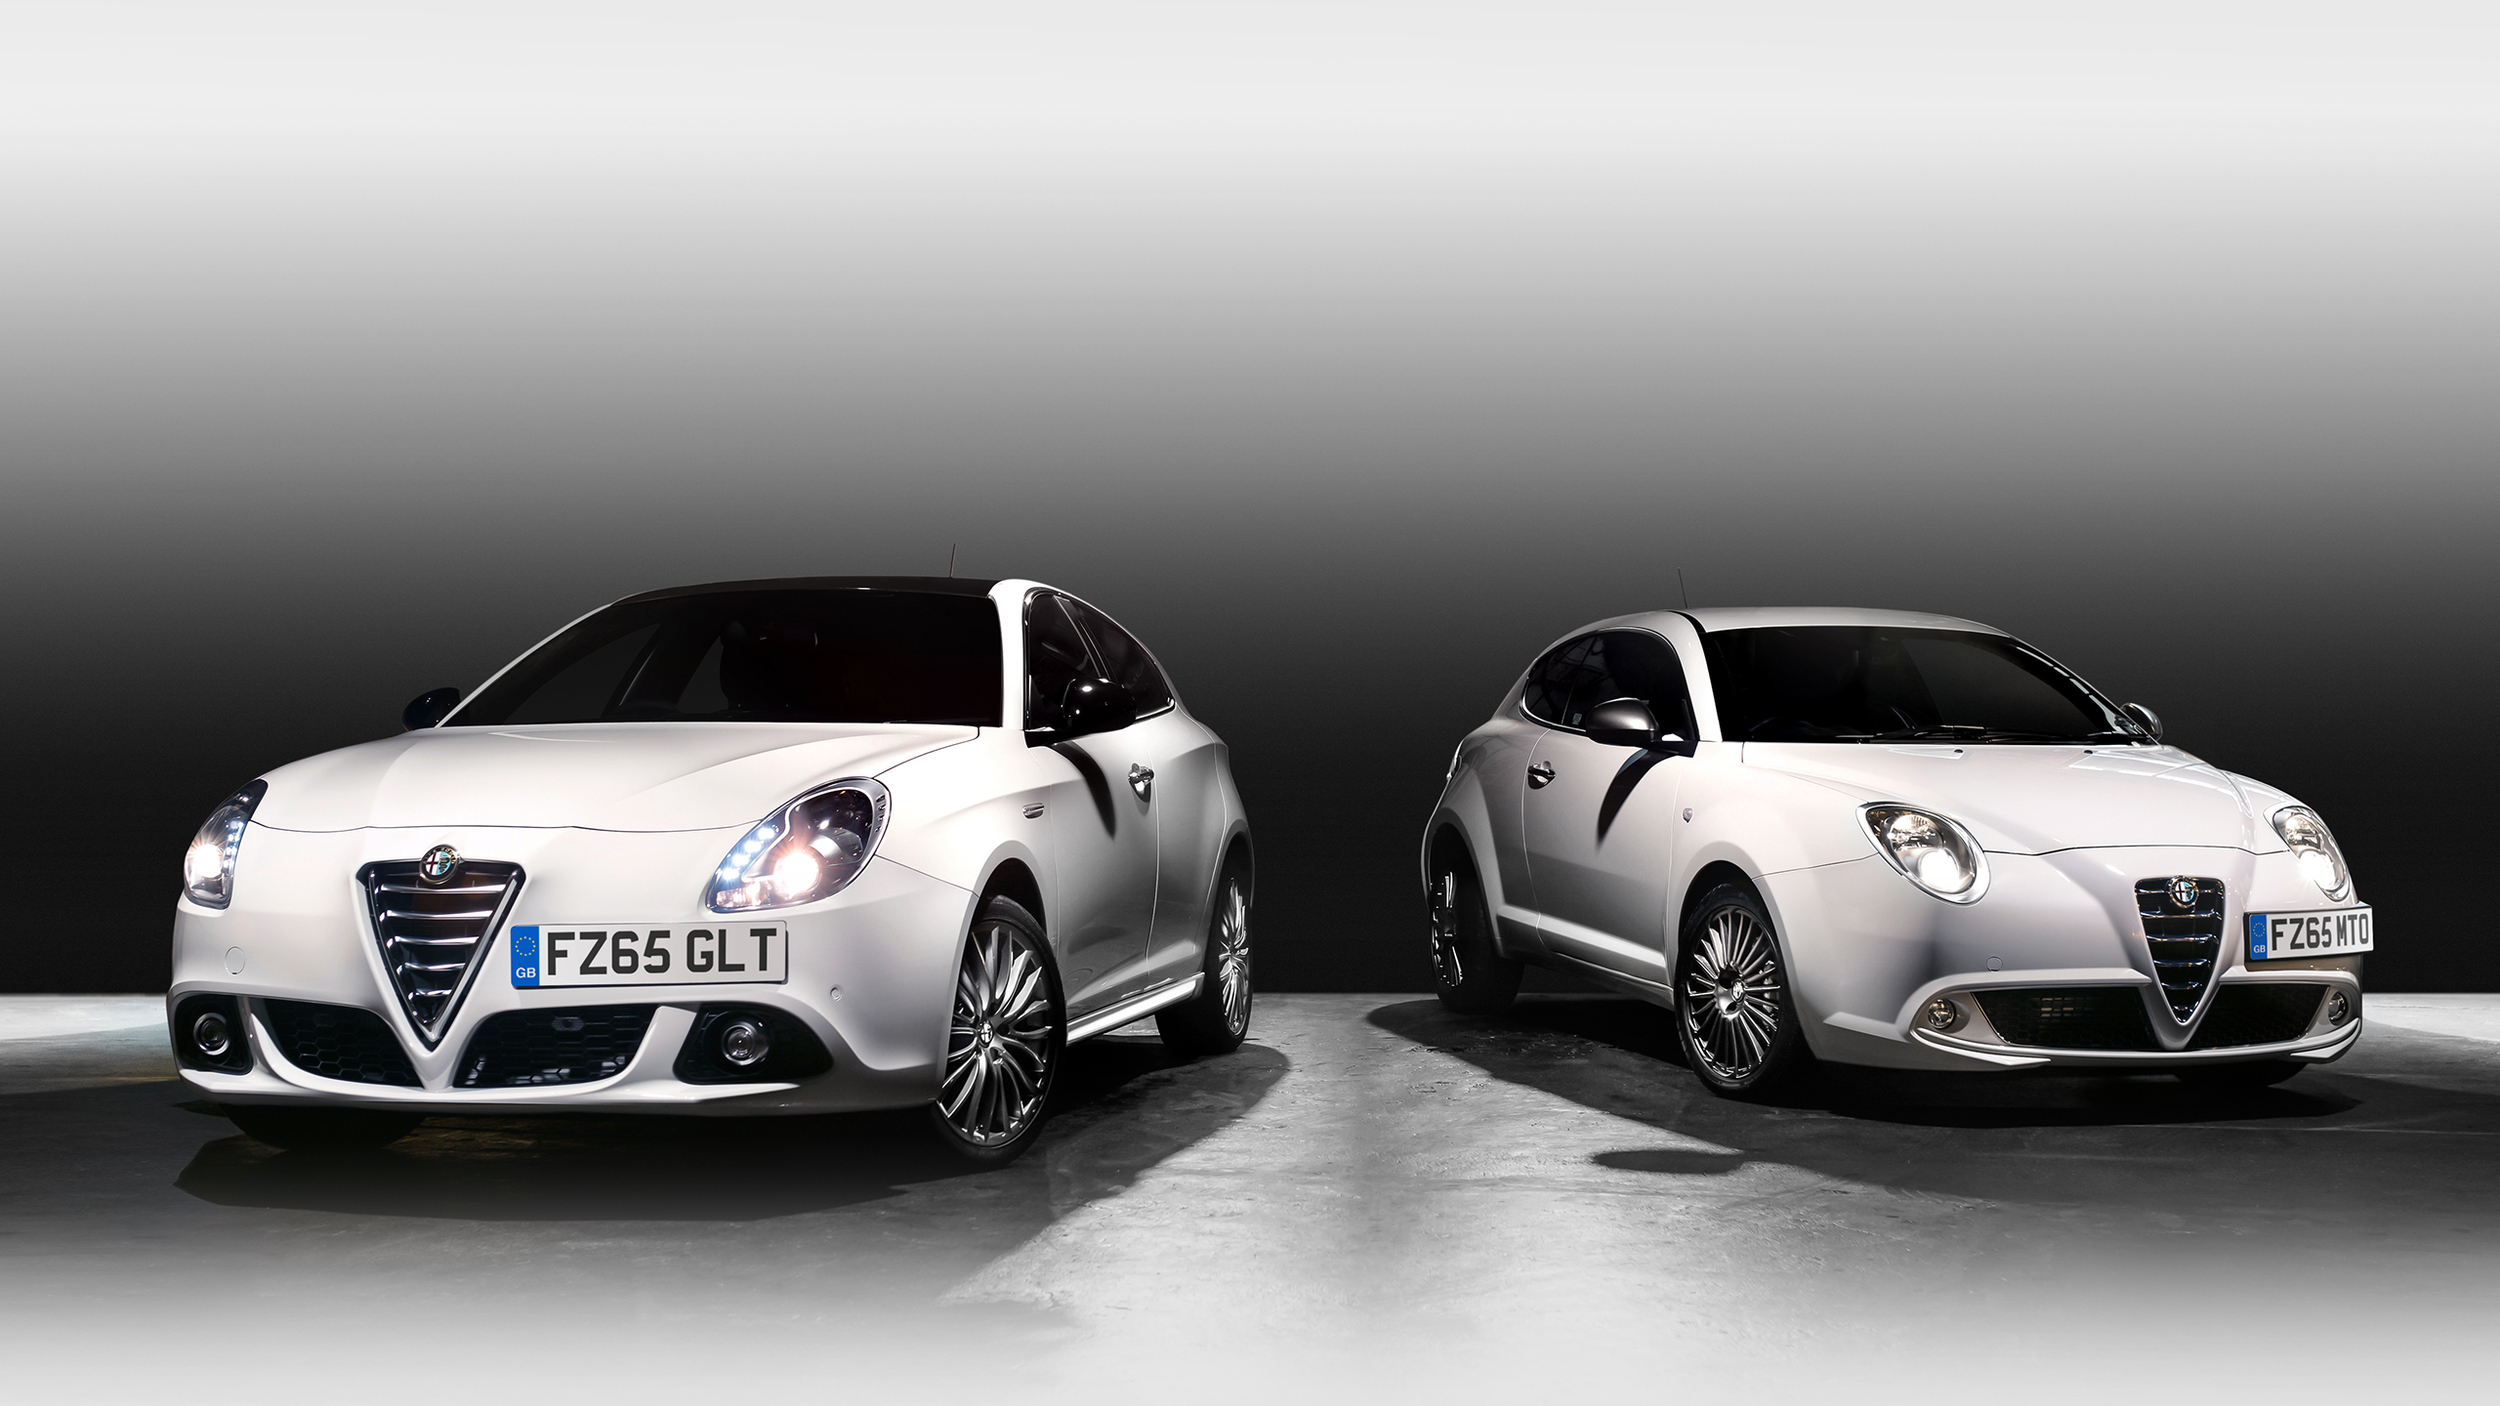 New flagship trim levels for Alfa Romeo MiTo and Giulietta